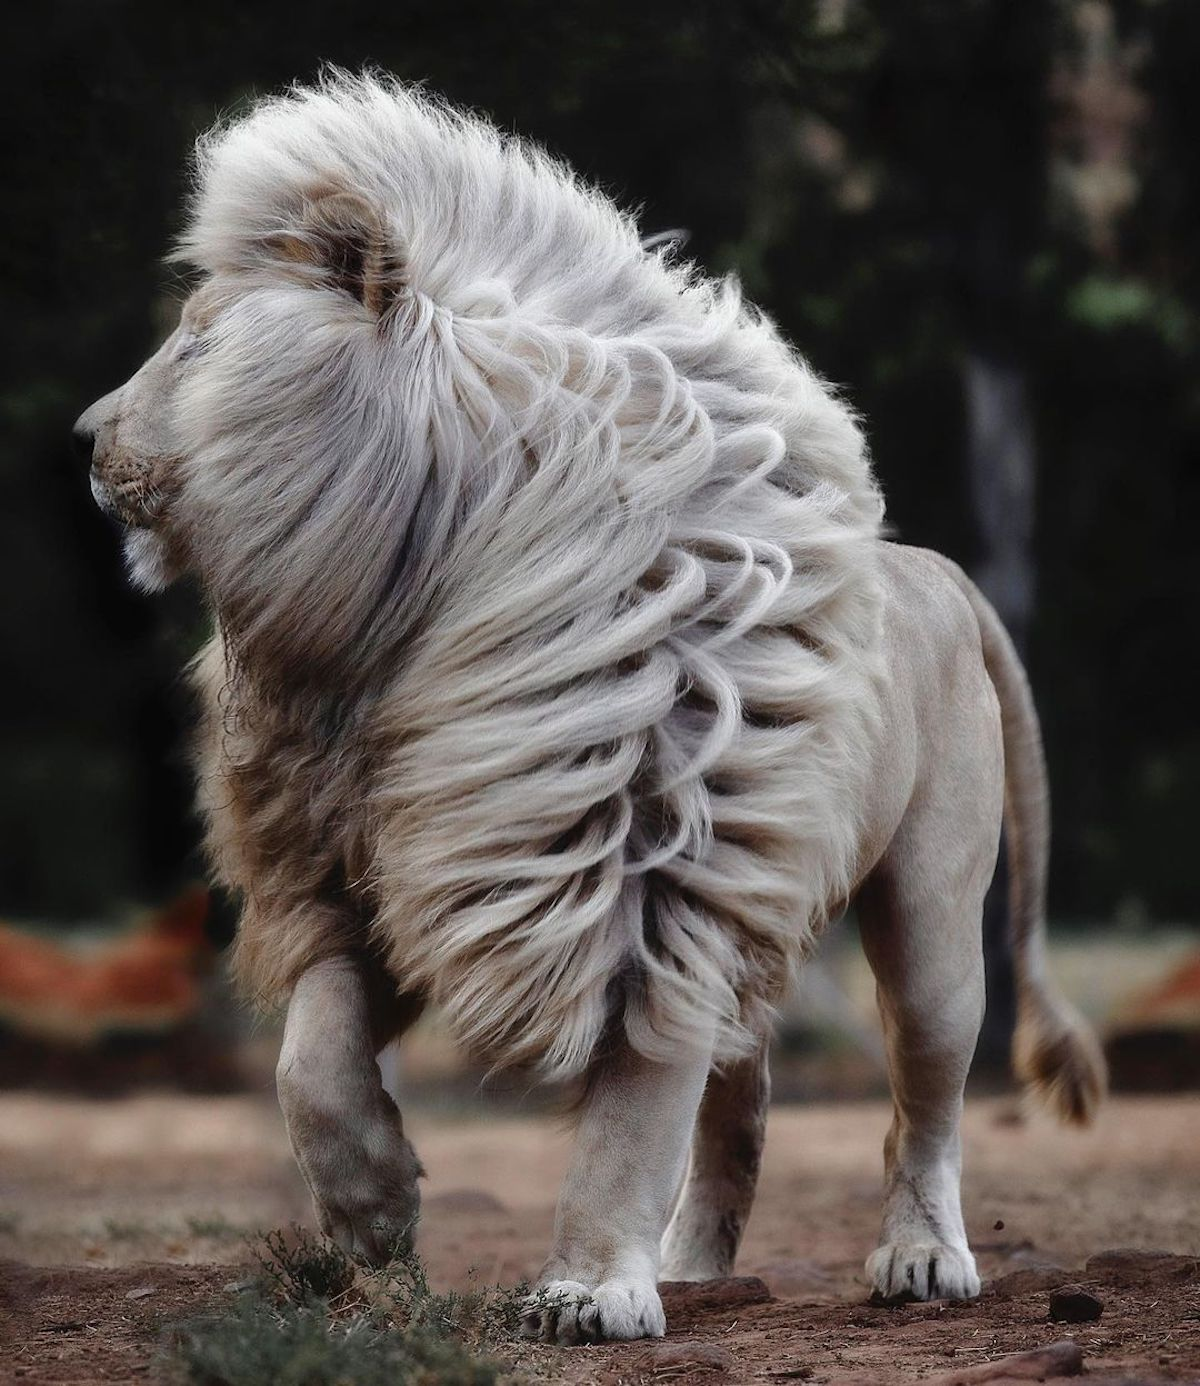 Wildlife Photographer Immortalizes Gorgeously Rare White Lions With the Most Luscious Manes – My Modern Met